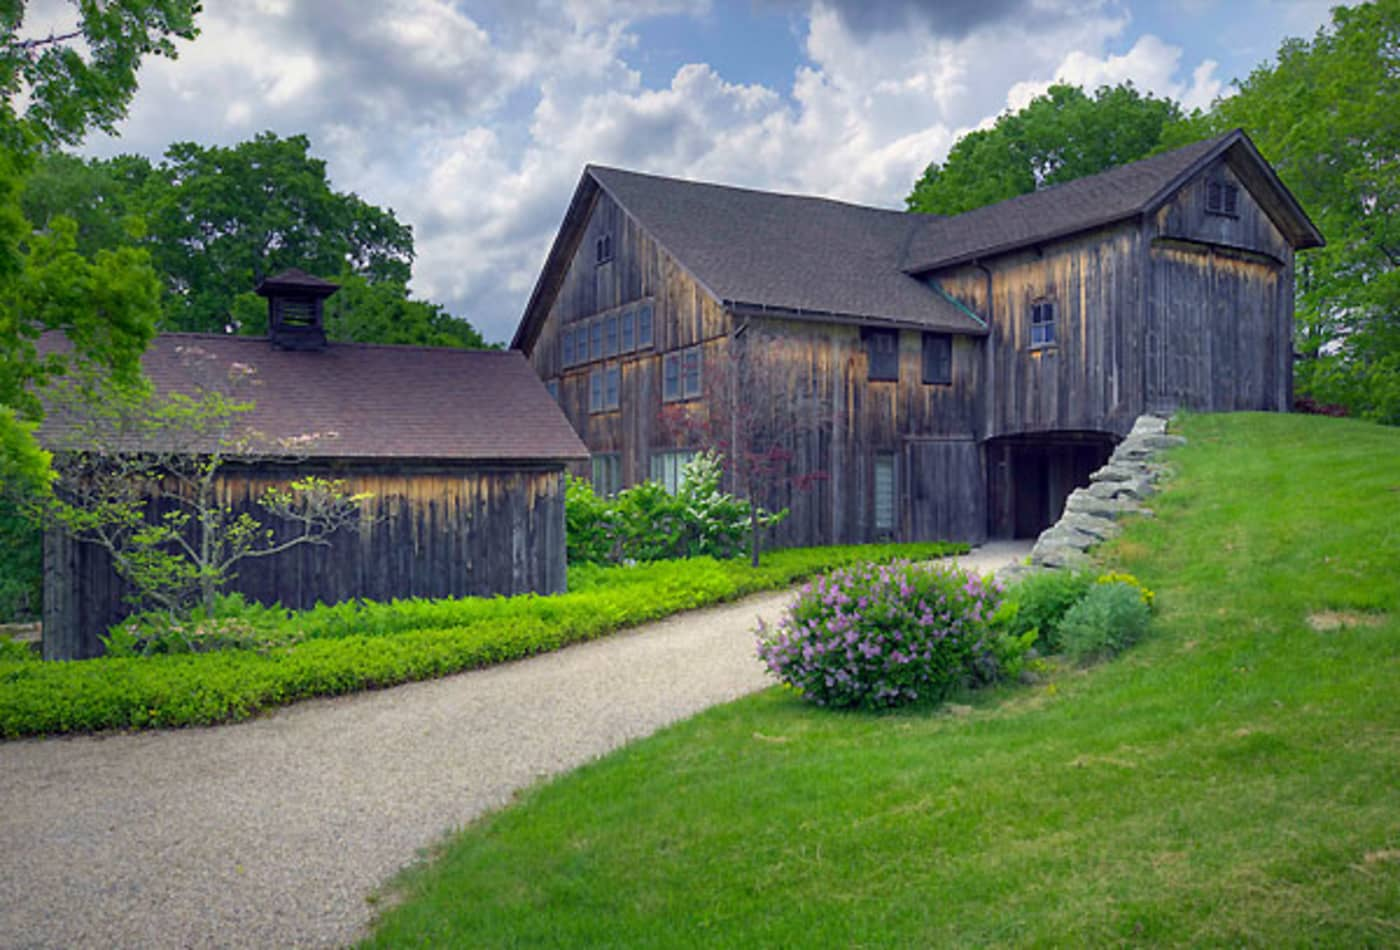 SS-Million-Dollars-Conversions-CT-Barn-After.jpg